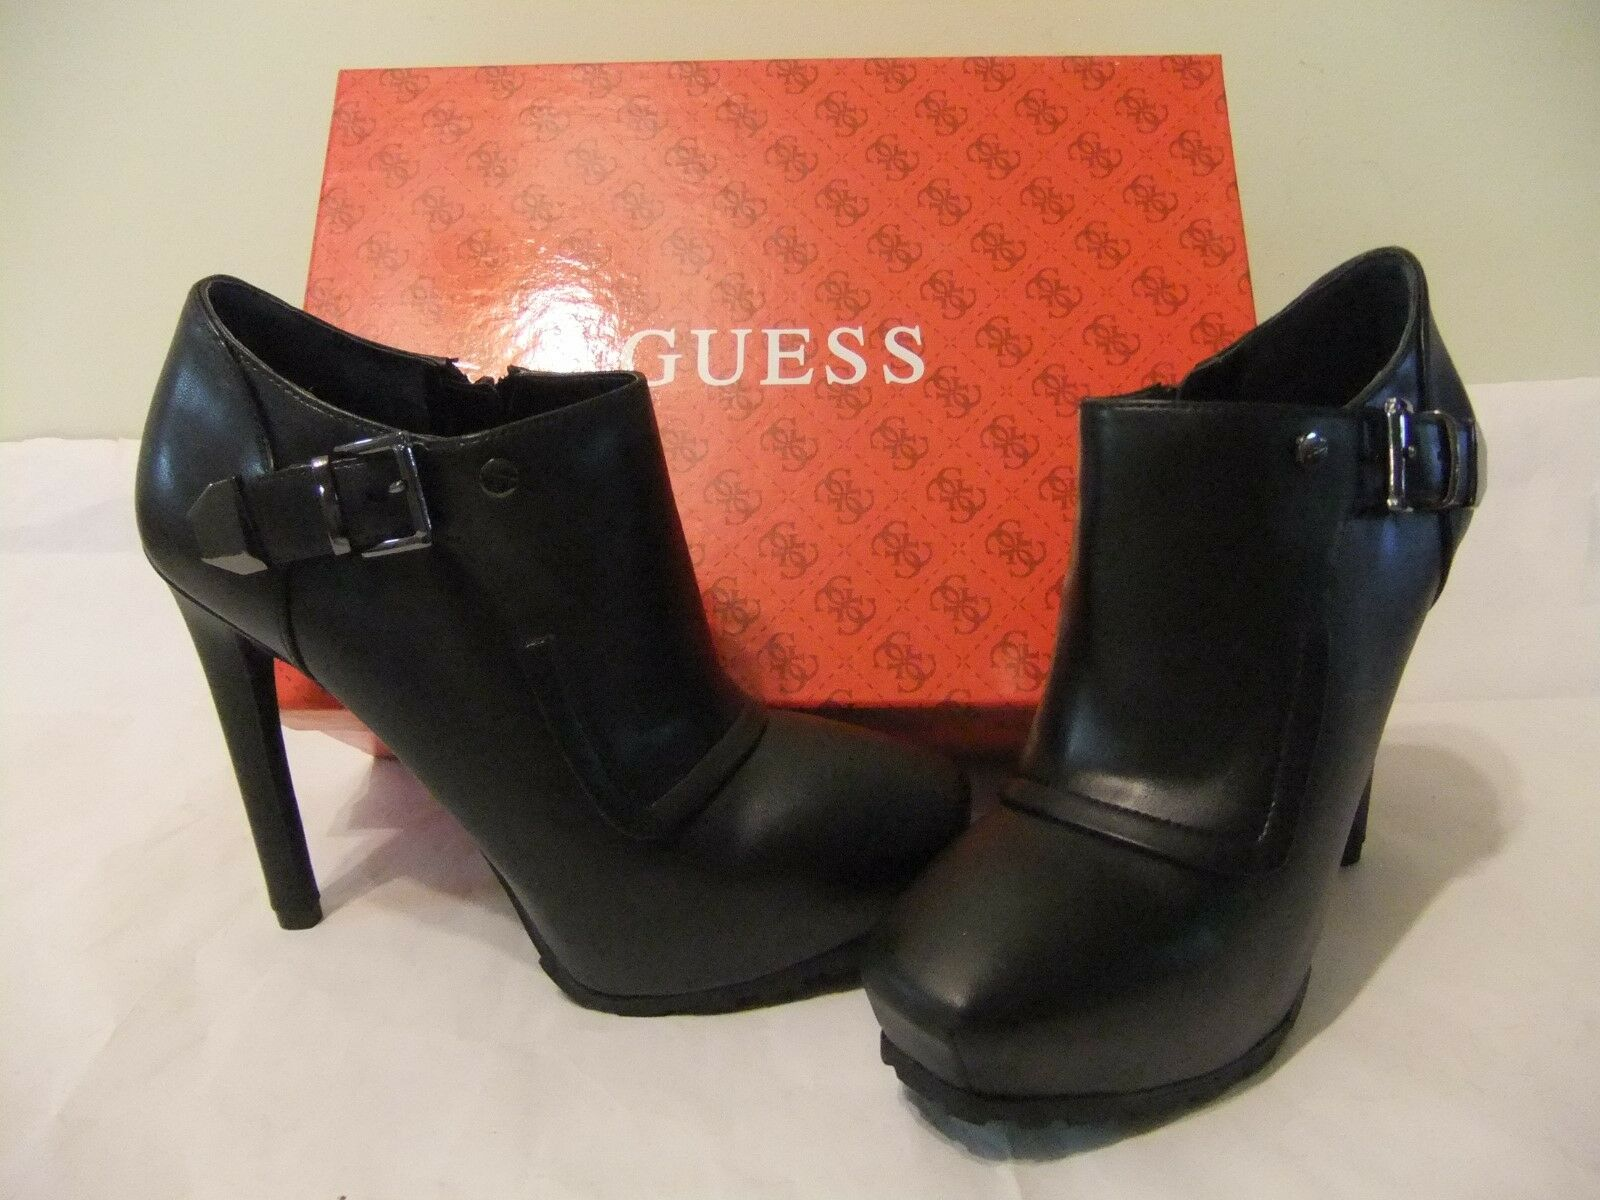 GUESS Indraz Black Leather Shootie Bootie Heel Ankle Size Size Ankle 10 NIB $140 b8db07